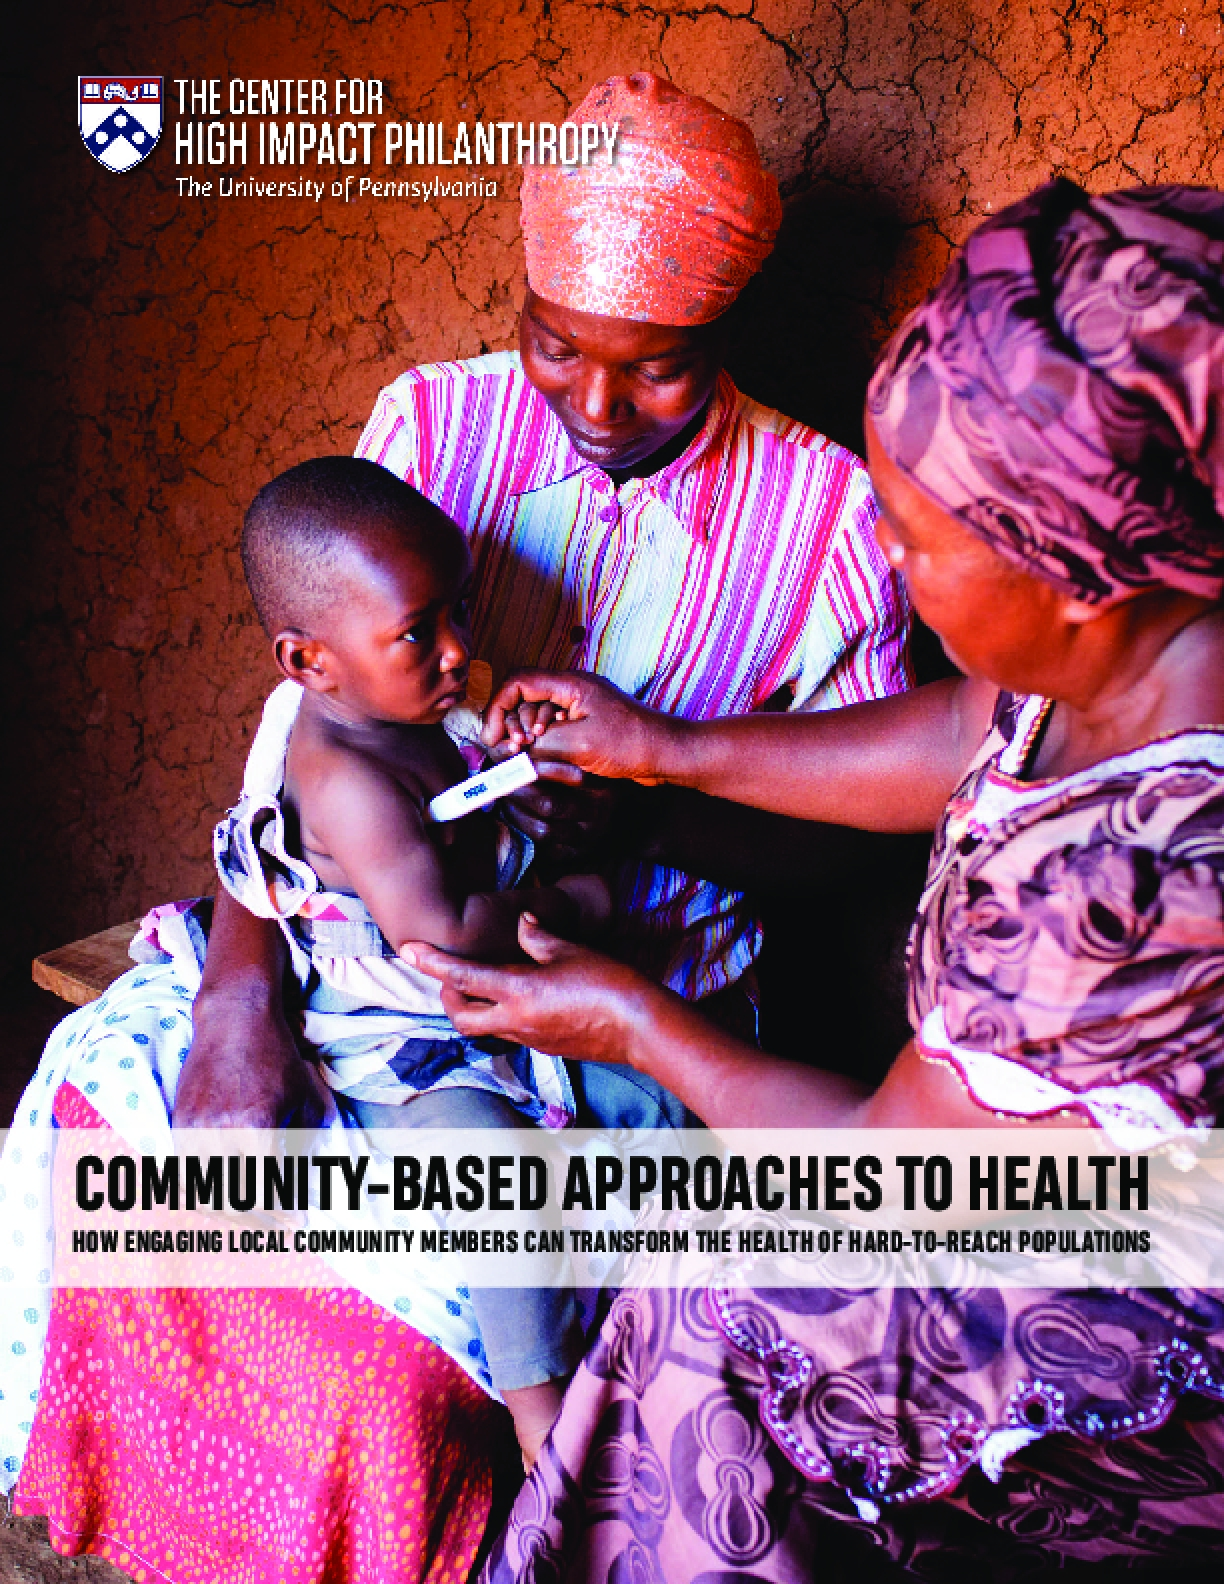 Community-Based Approaches to Health: How Engaging Local Community Members Can Transform the Health of Hard-to-Reach Populations